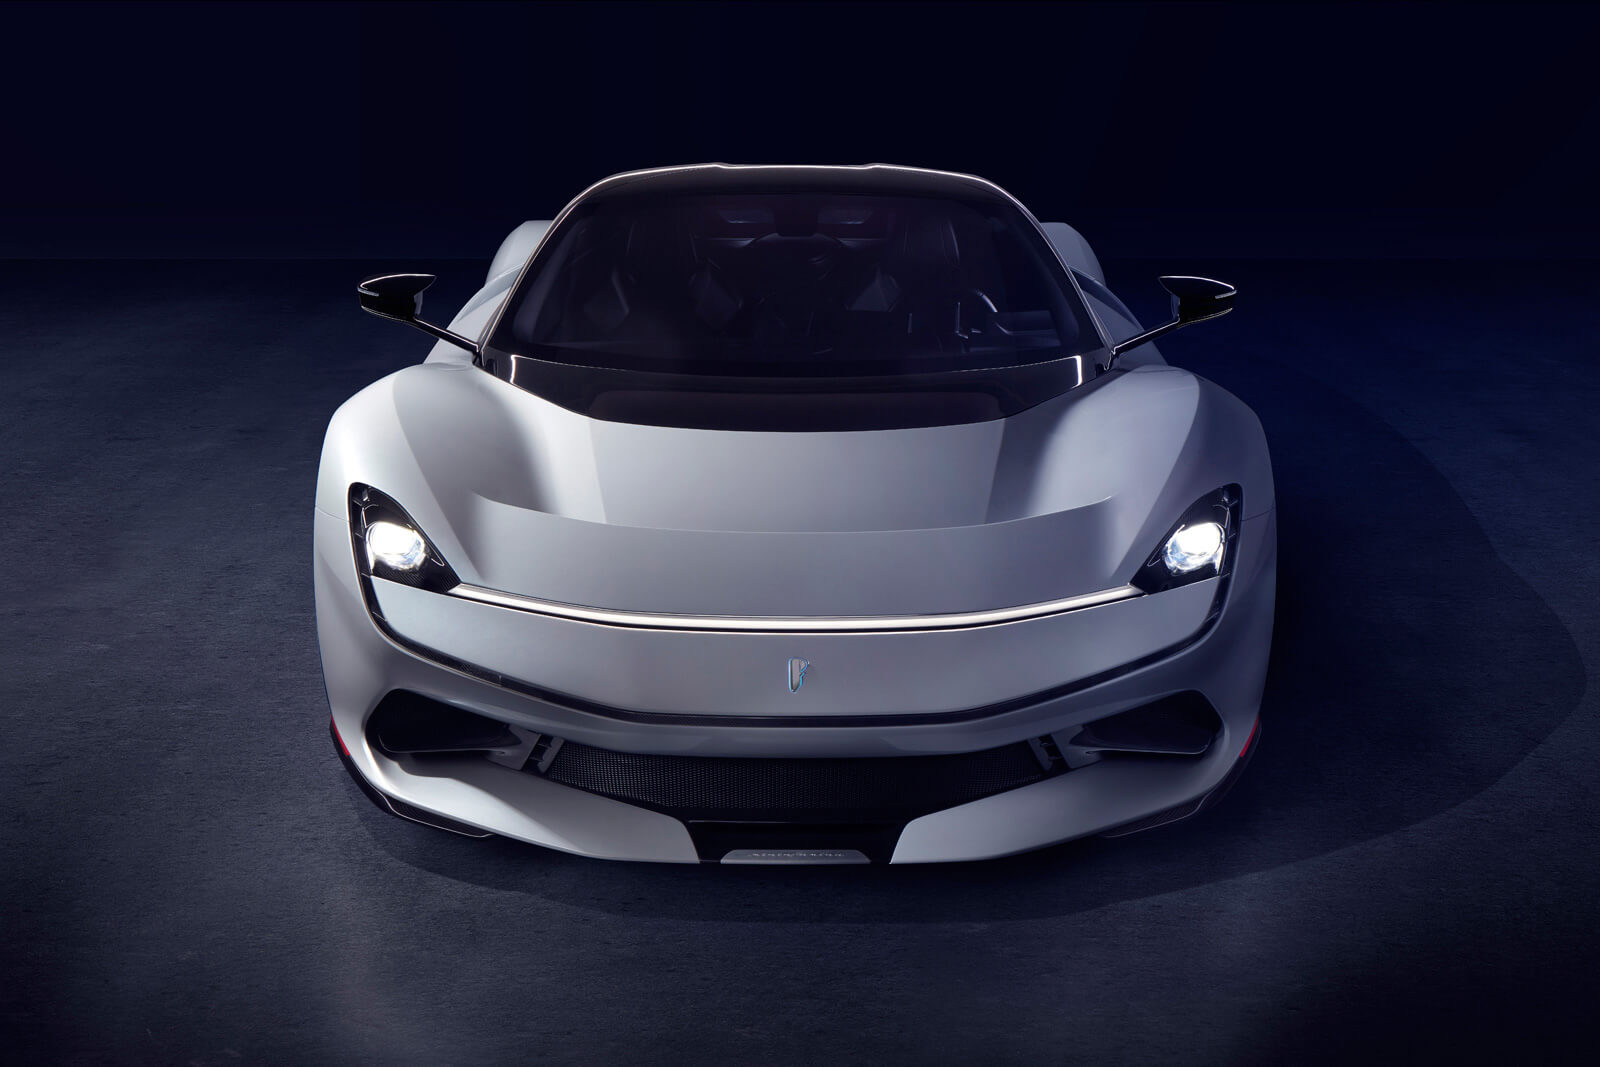 Pininfarina Battista arrives in 2020 as the most powerful road-legal car ever designed and built in Italy.